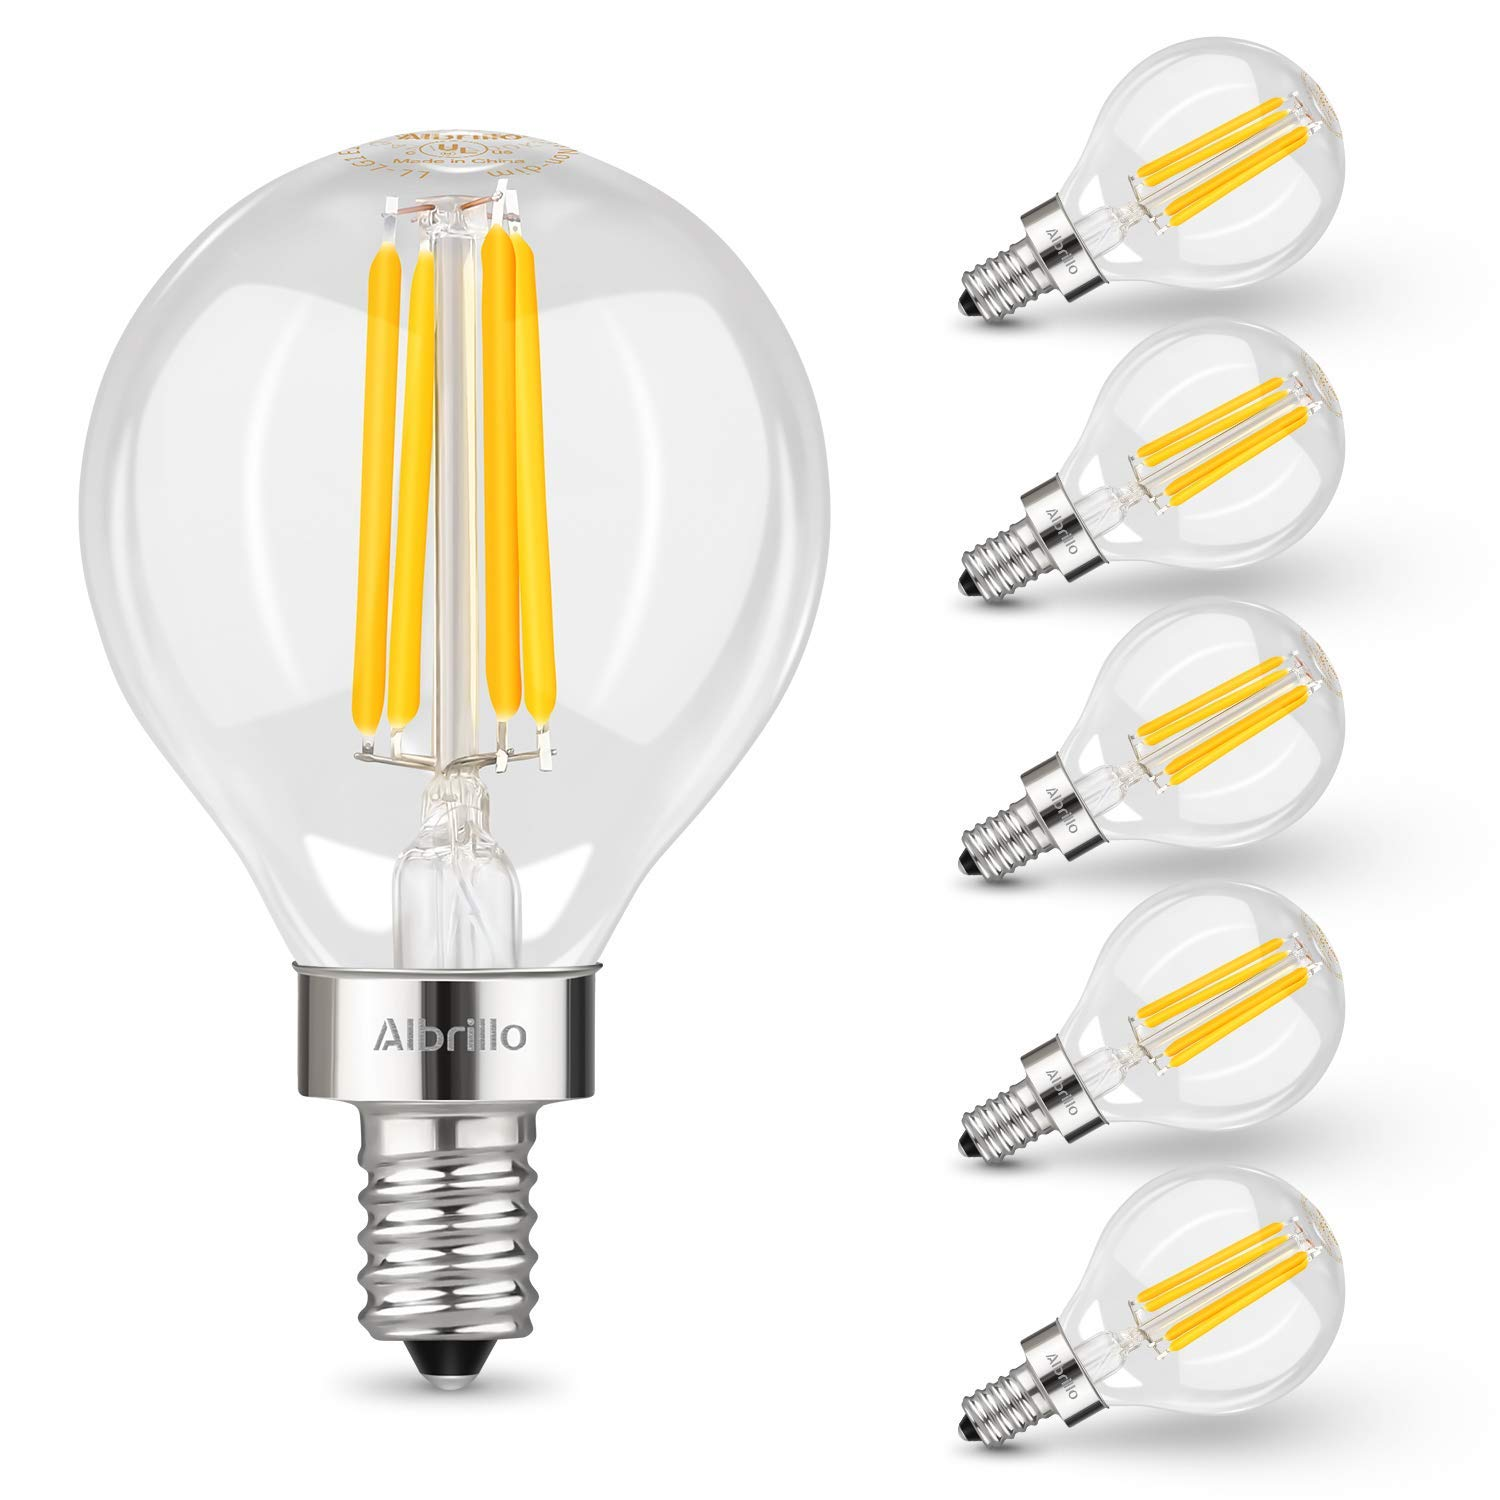 Albrillo E12 LED Light Bulbs, 40 Watt Candelabra Bulbs Equivalent, Daylight White 4000K Chandelier Bulbs, Decorate Candle Base Non-Dimmable, 6 Pack